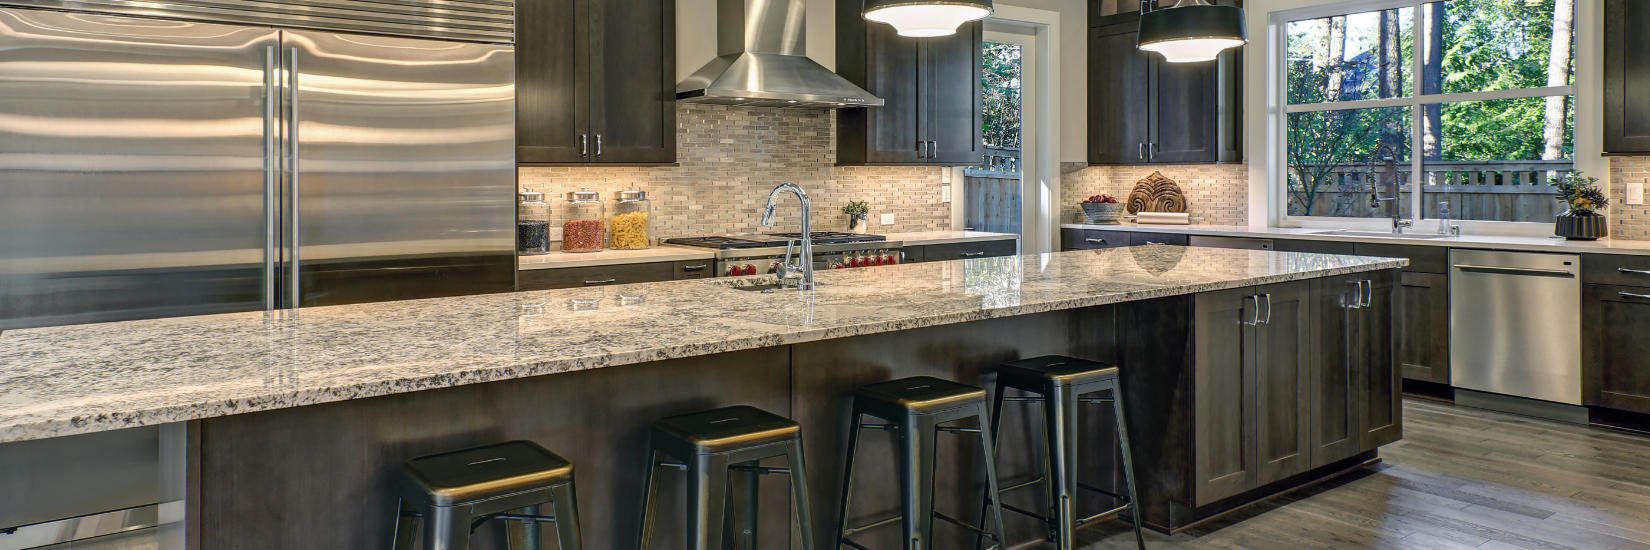 most popular home remodeling jobs in 2016 | jericho